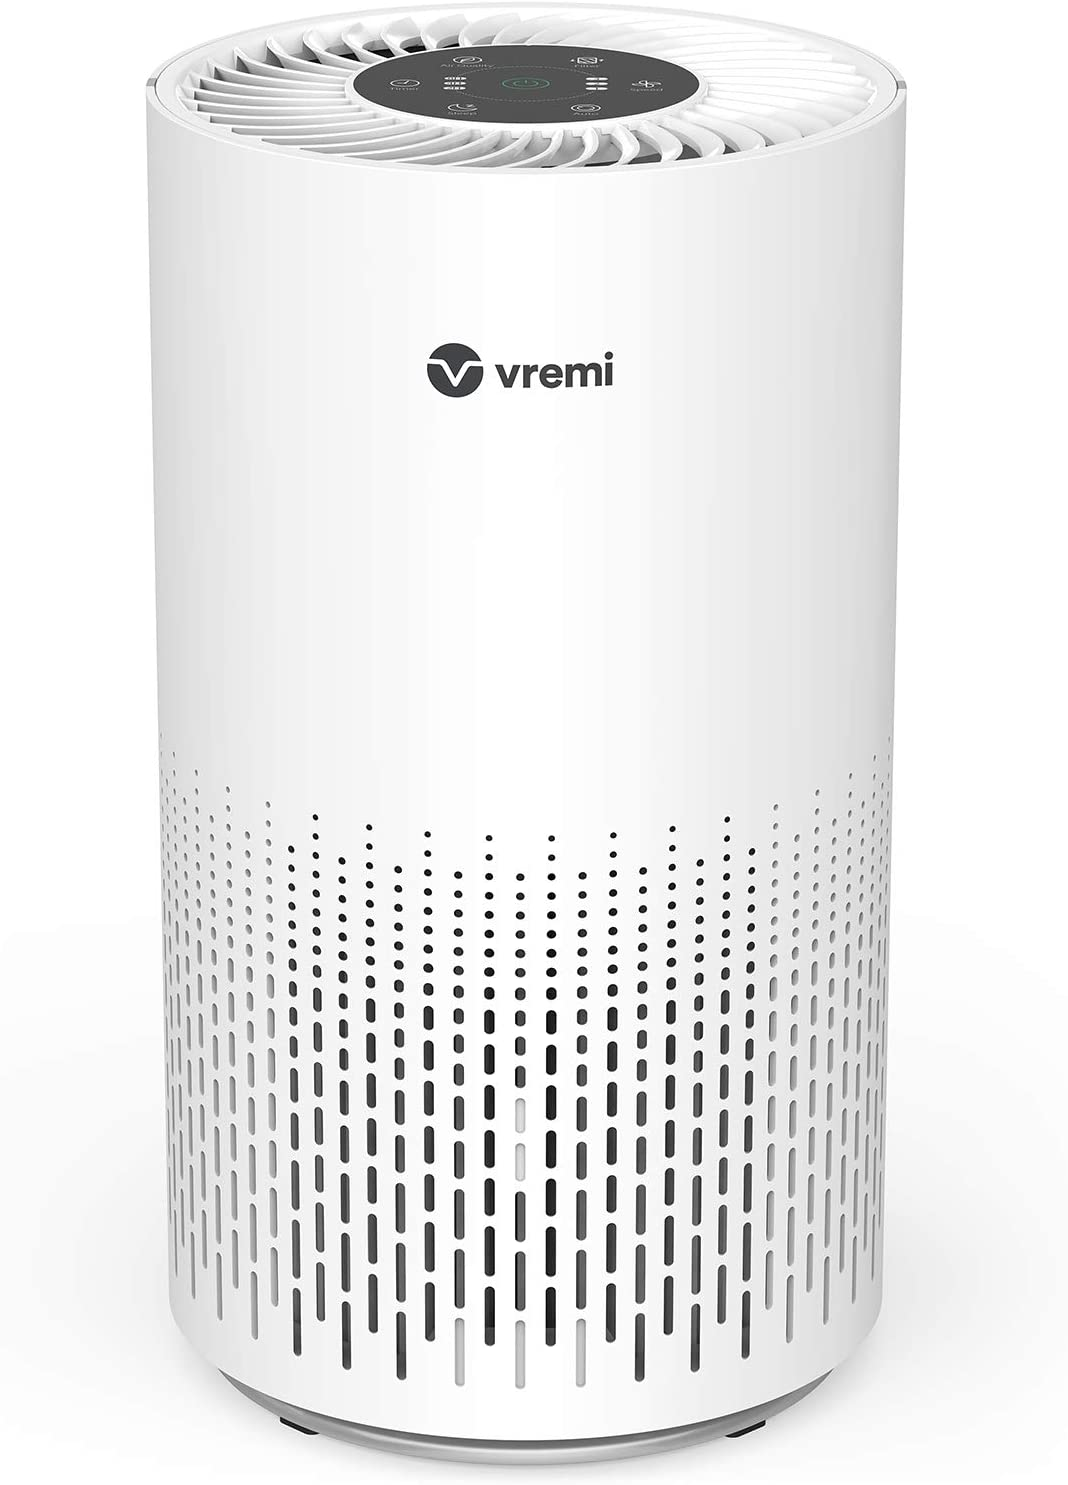 Vremi True HEPA Air Purifier